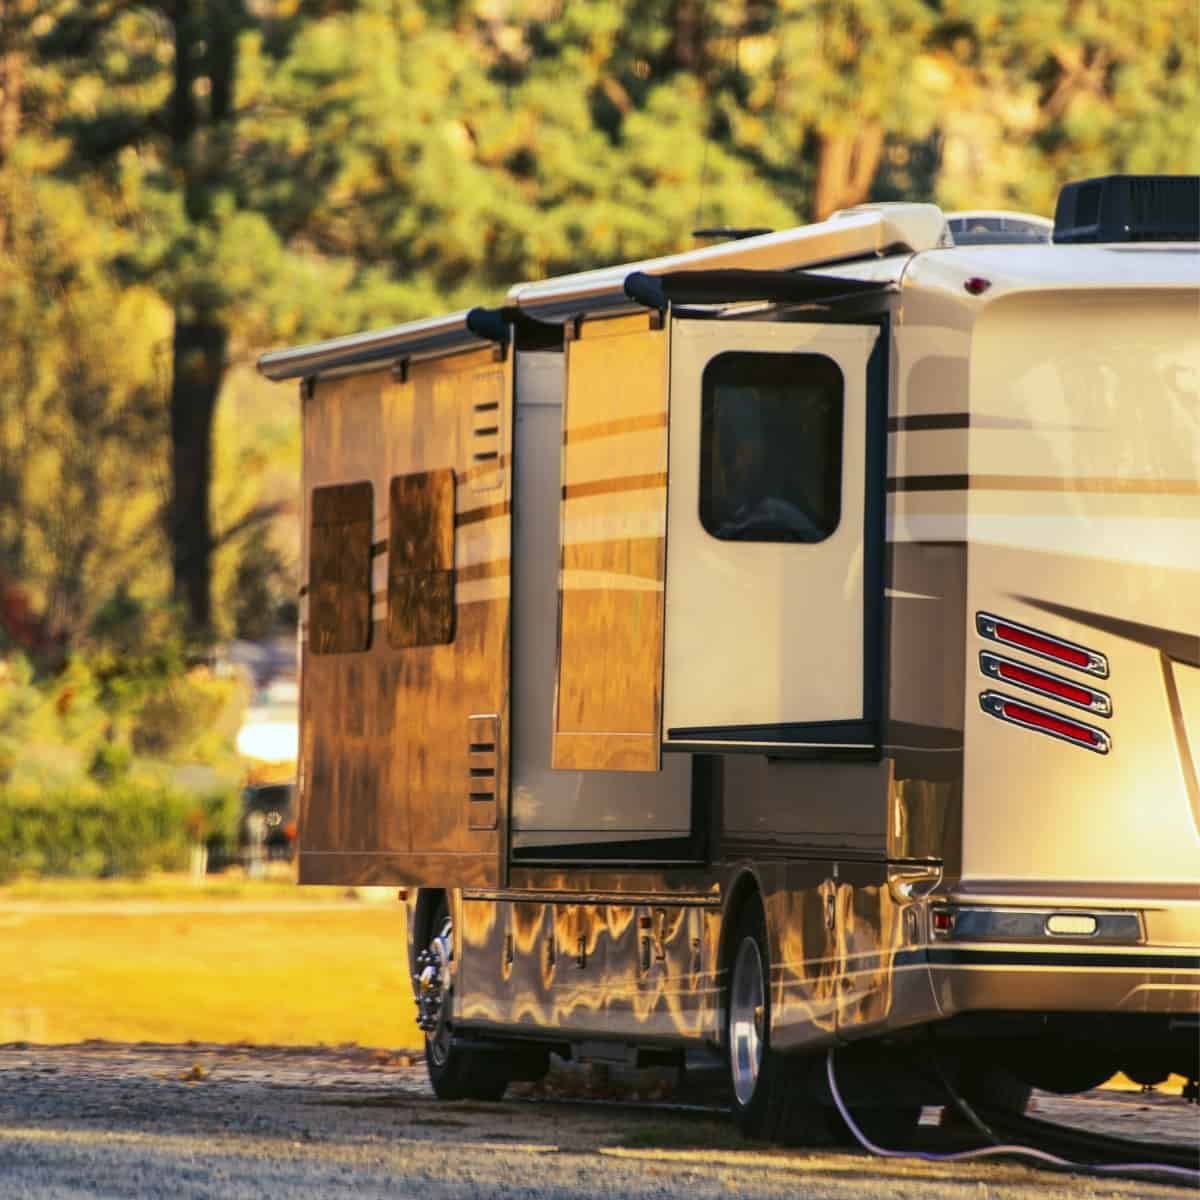 Feature image of a class A motorhome with utilities hooked up.